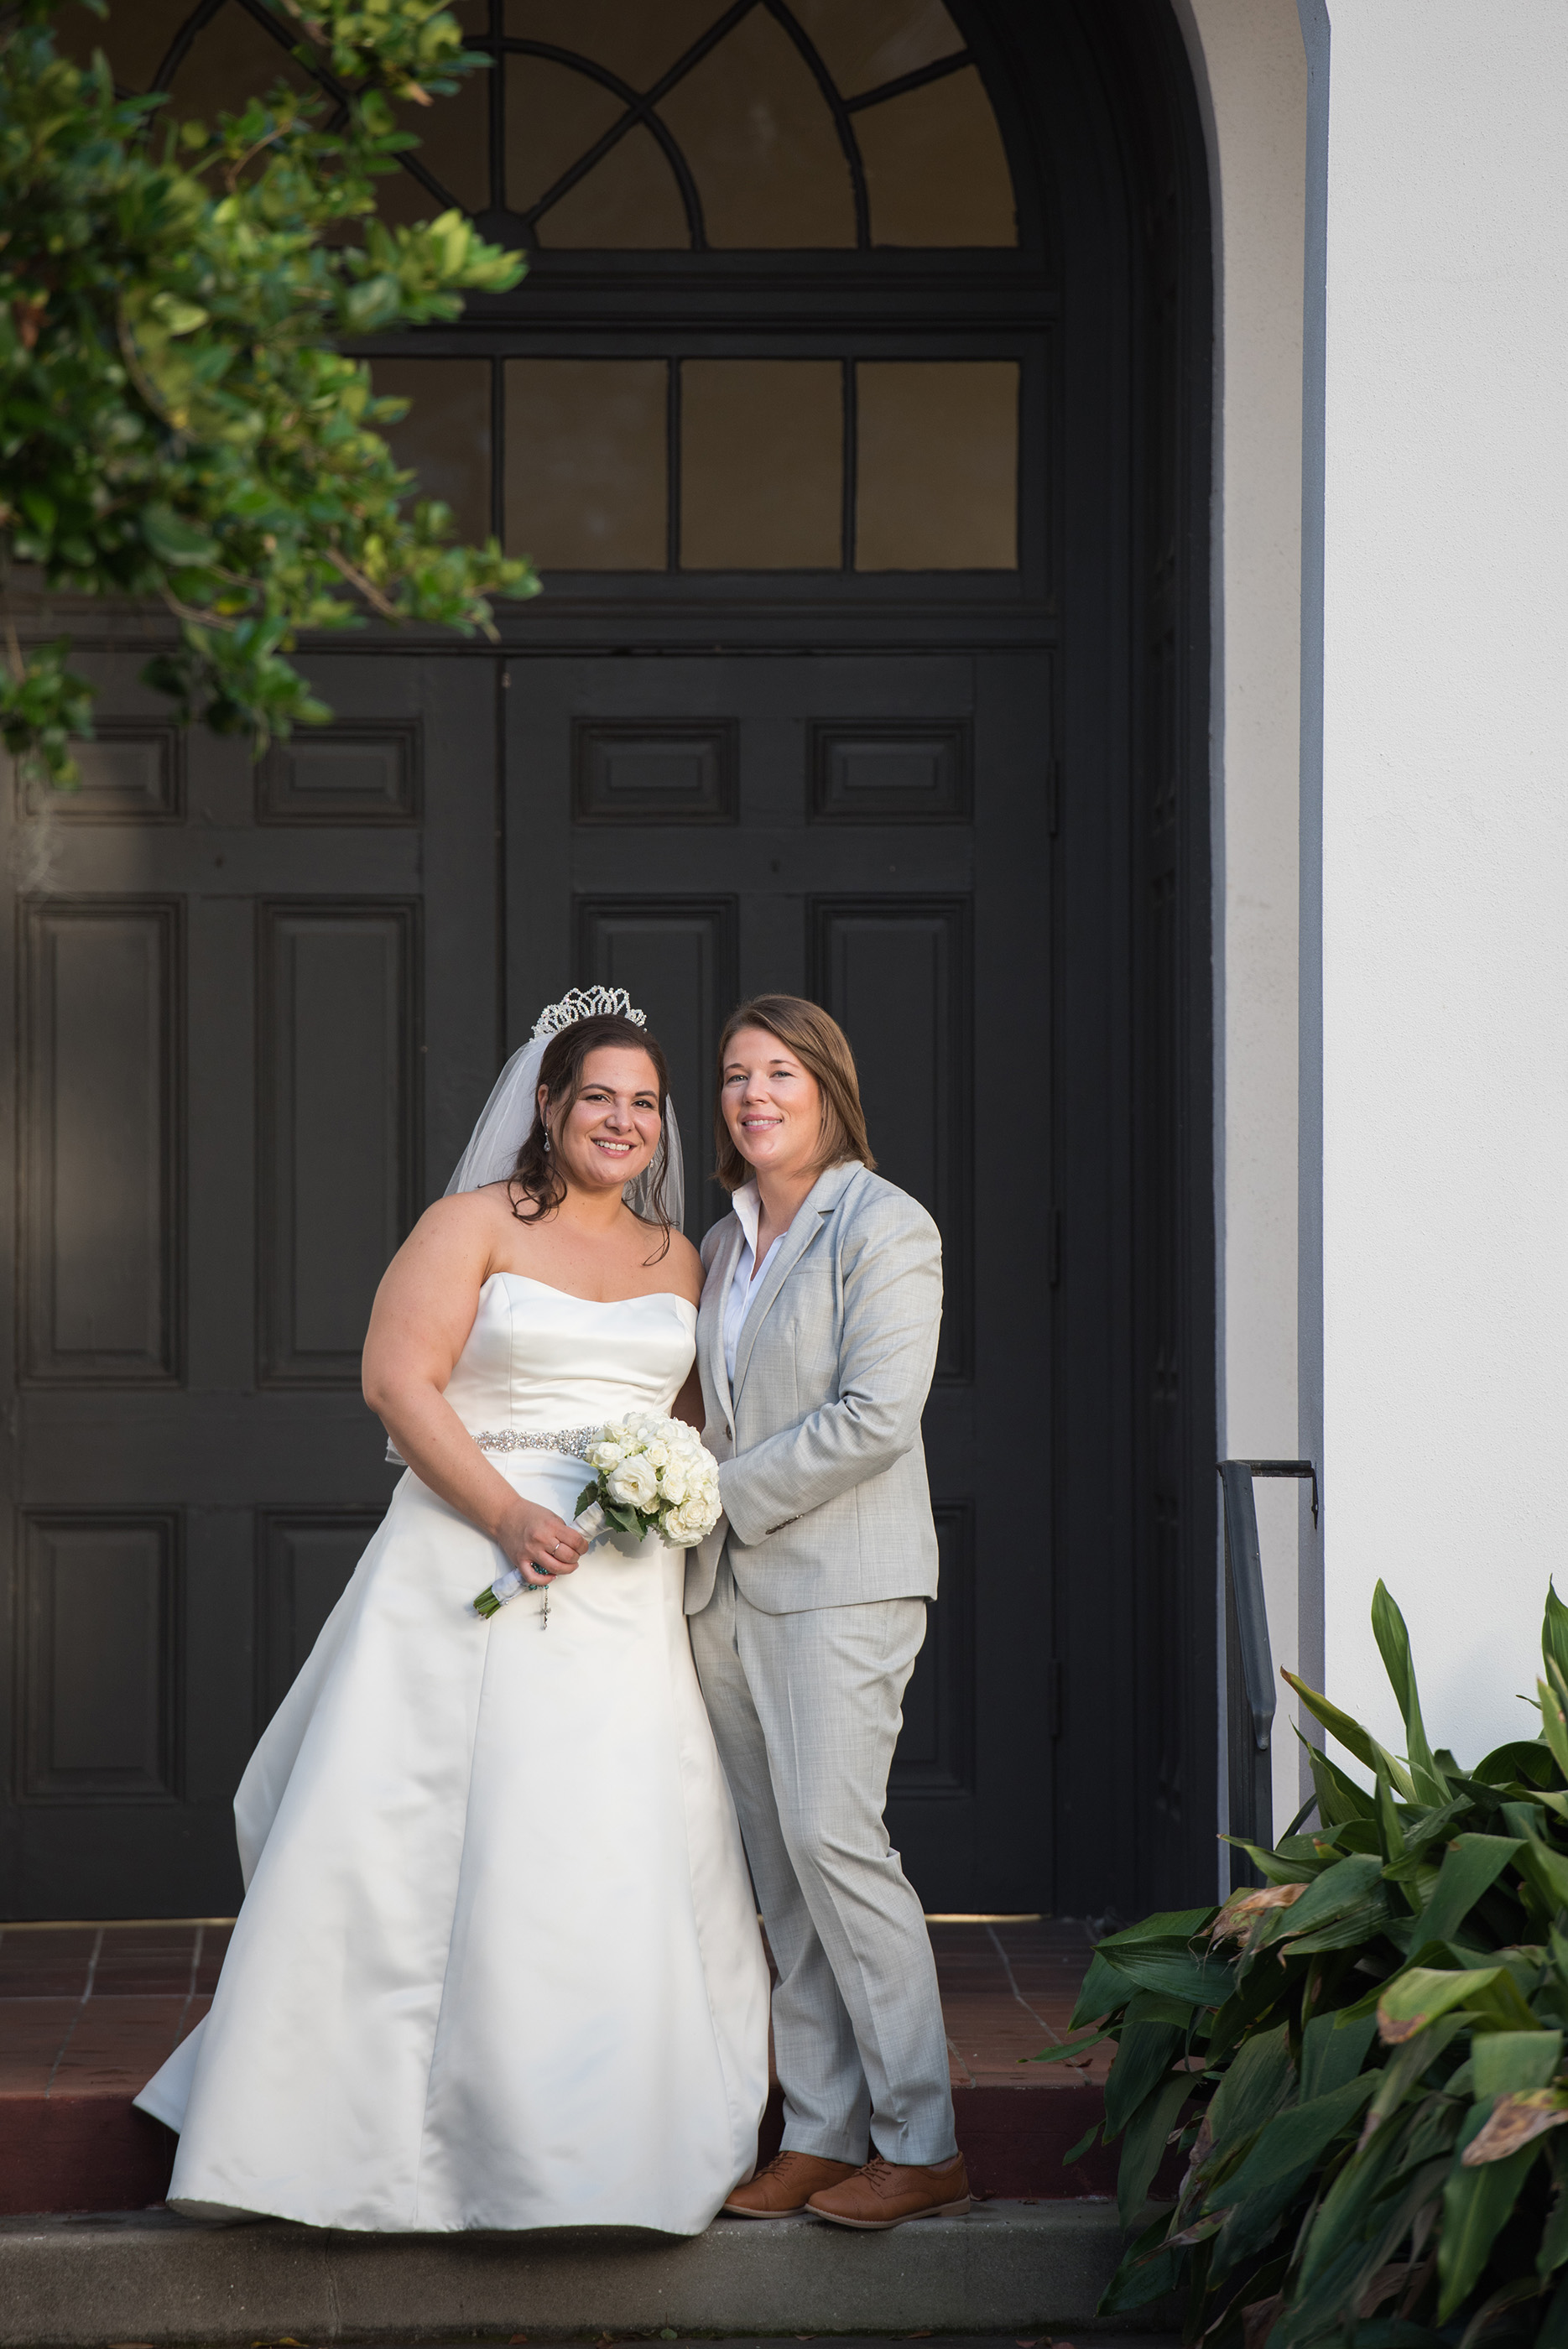 Weddings / Special Events — Headshot Photography by